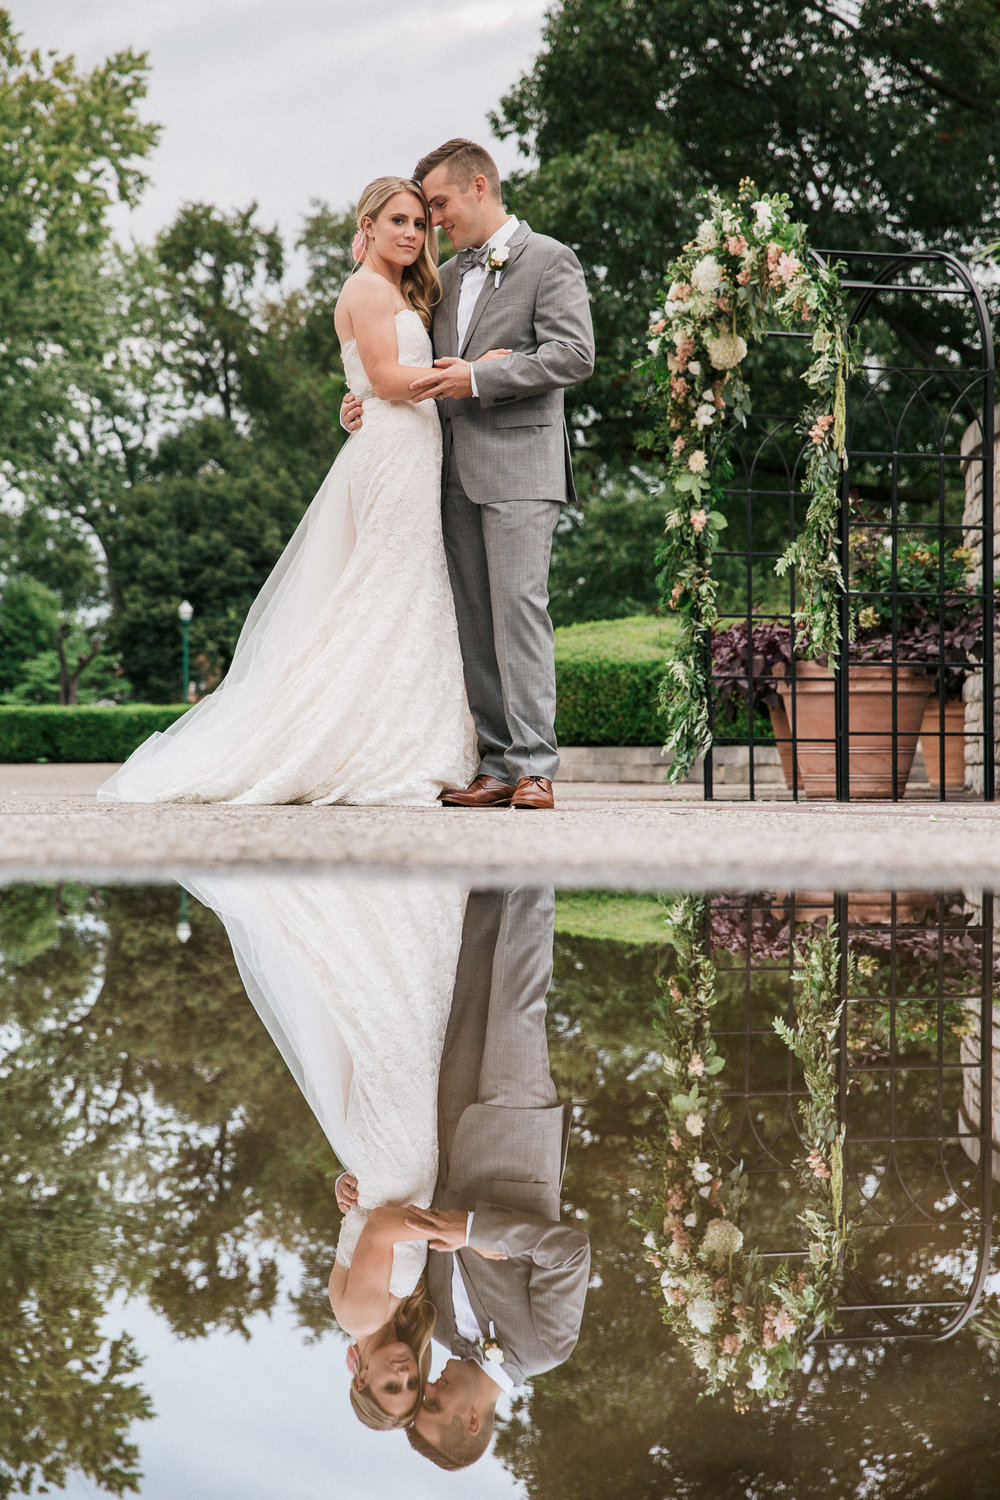 Robb McCormick Photography - Wedding Photographer (45 of 128).jpg